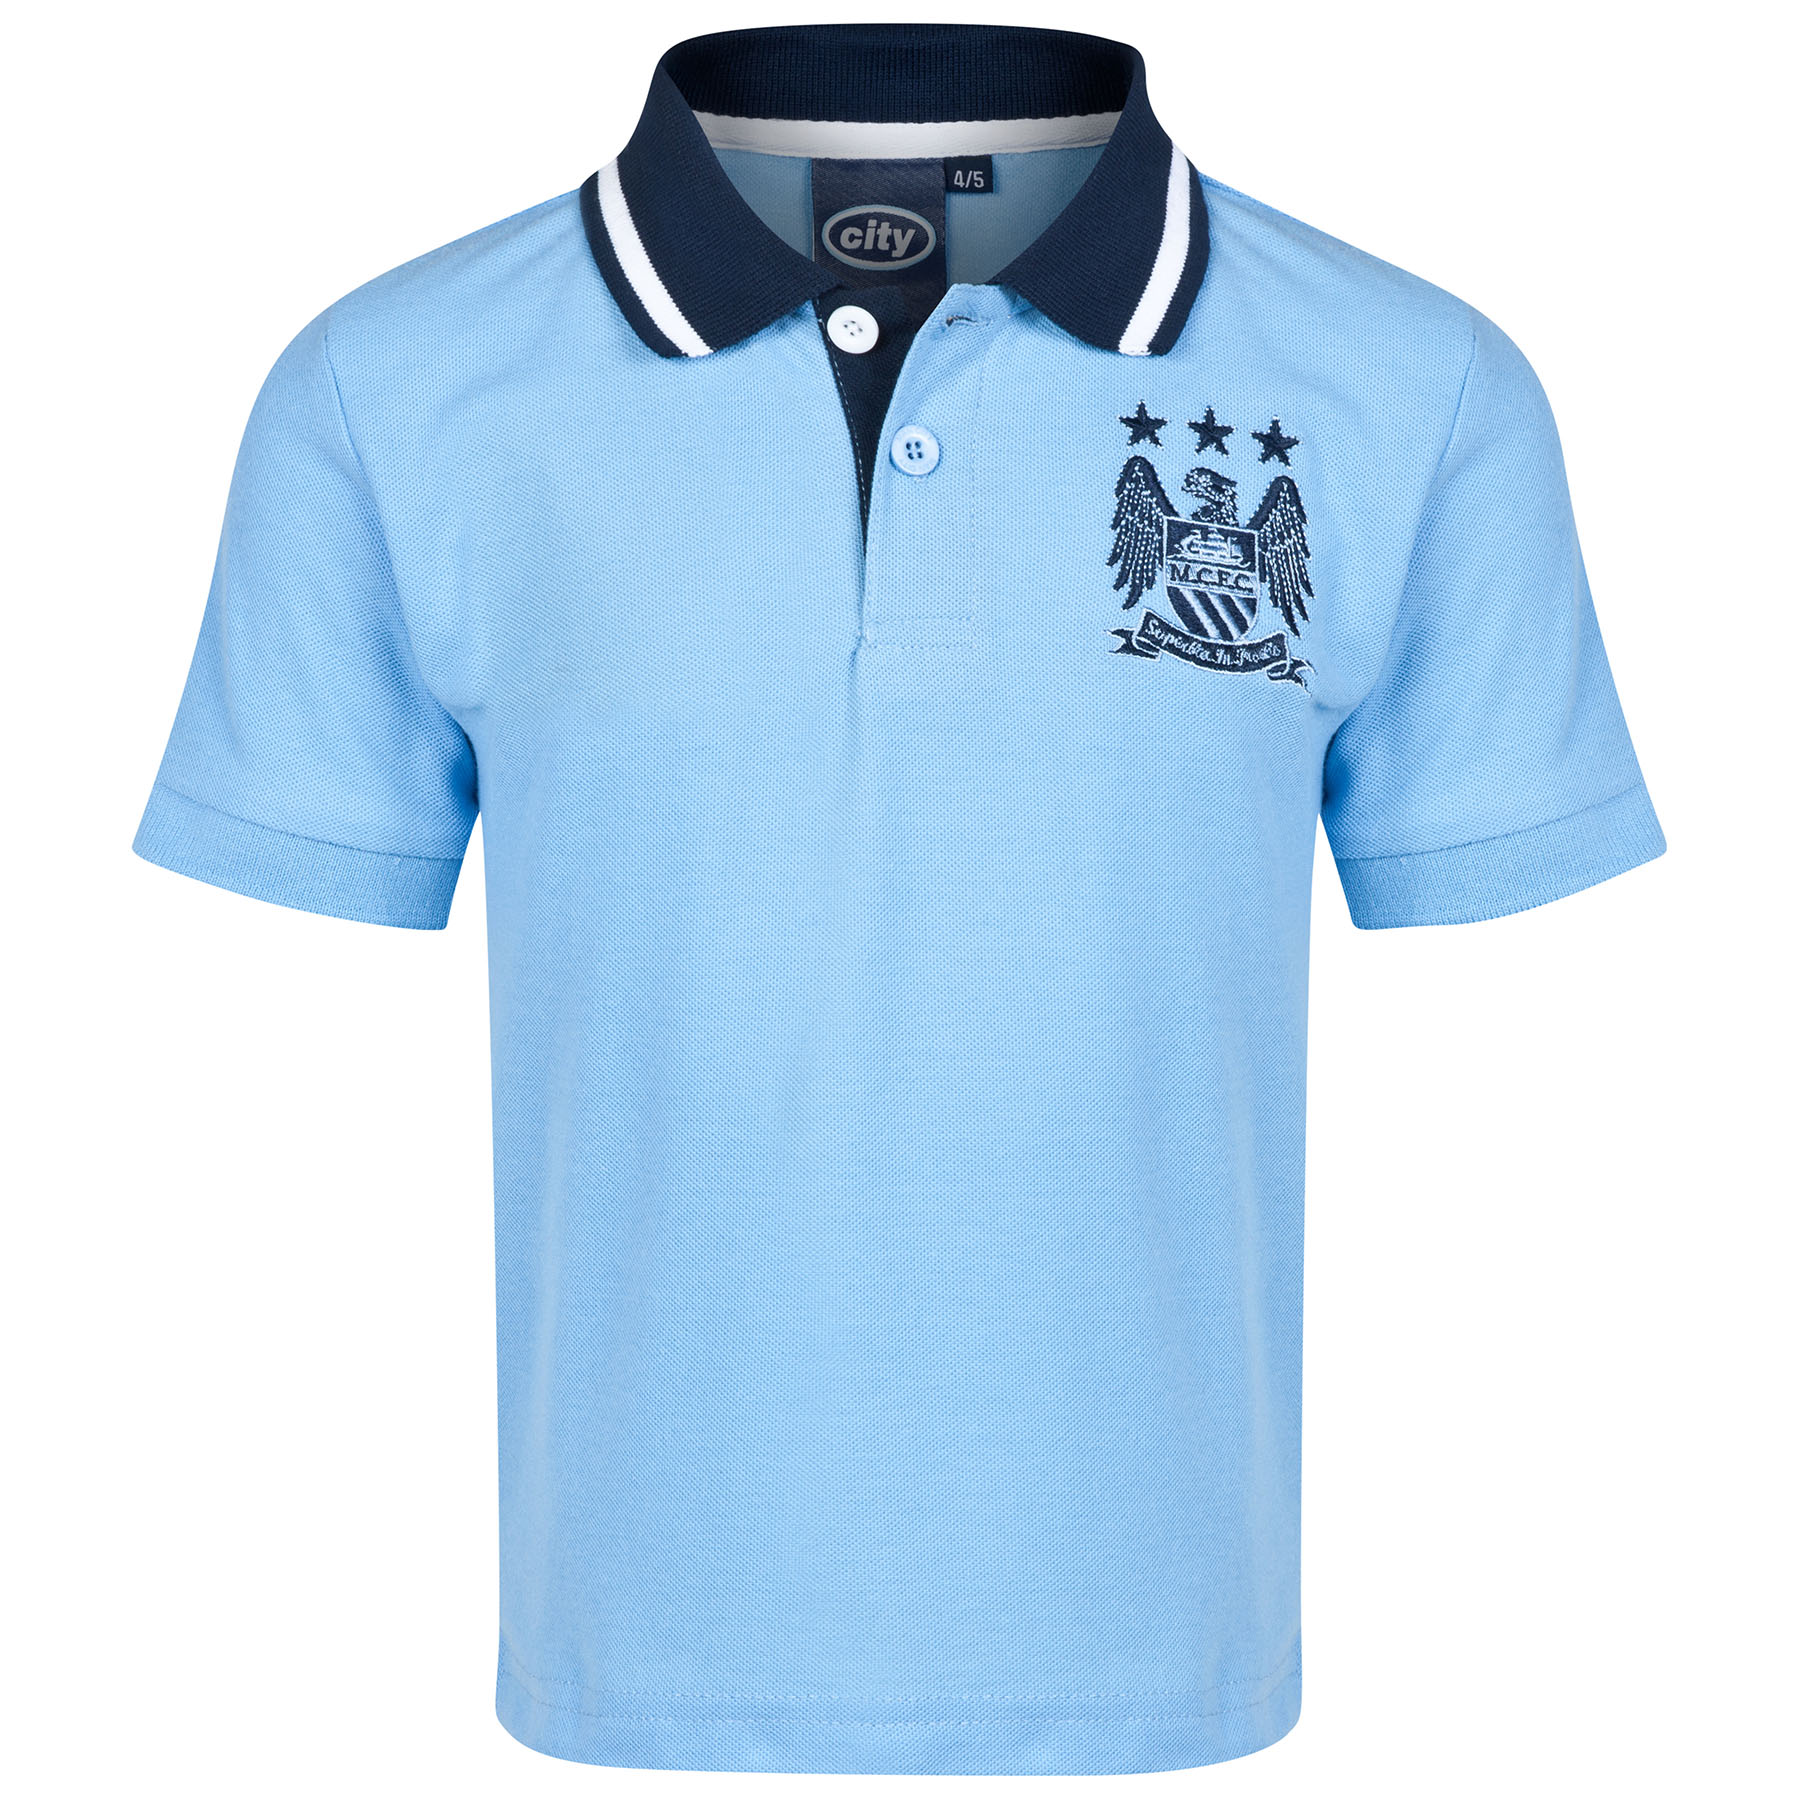 Manchester City Classic Polo Shirt - Sky - Infant Boys